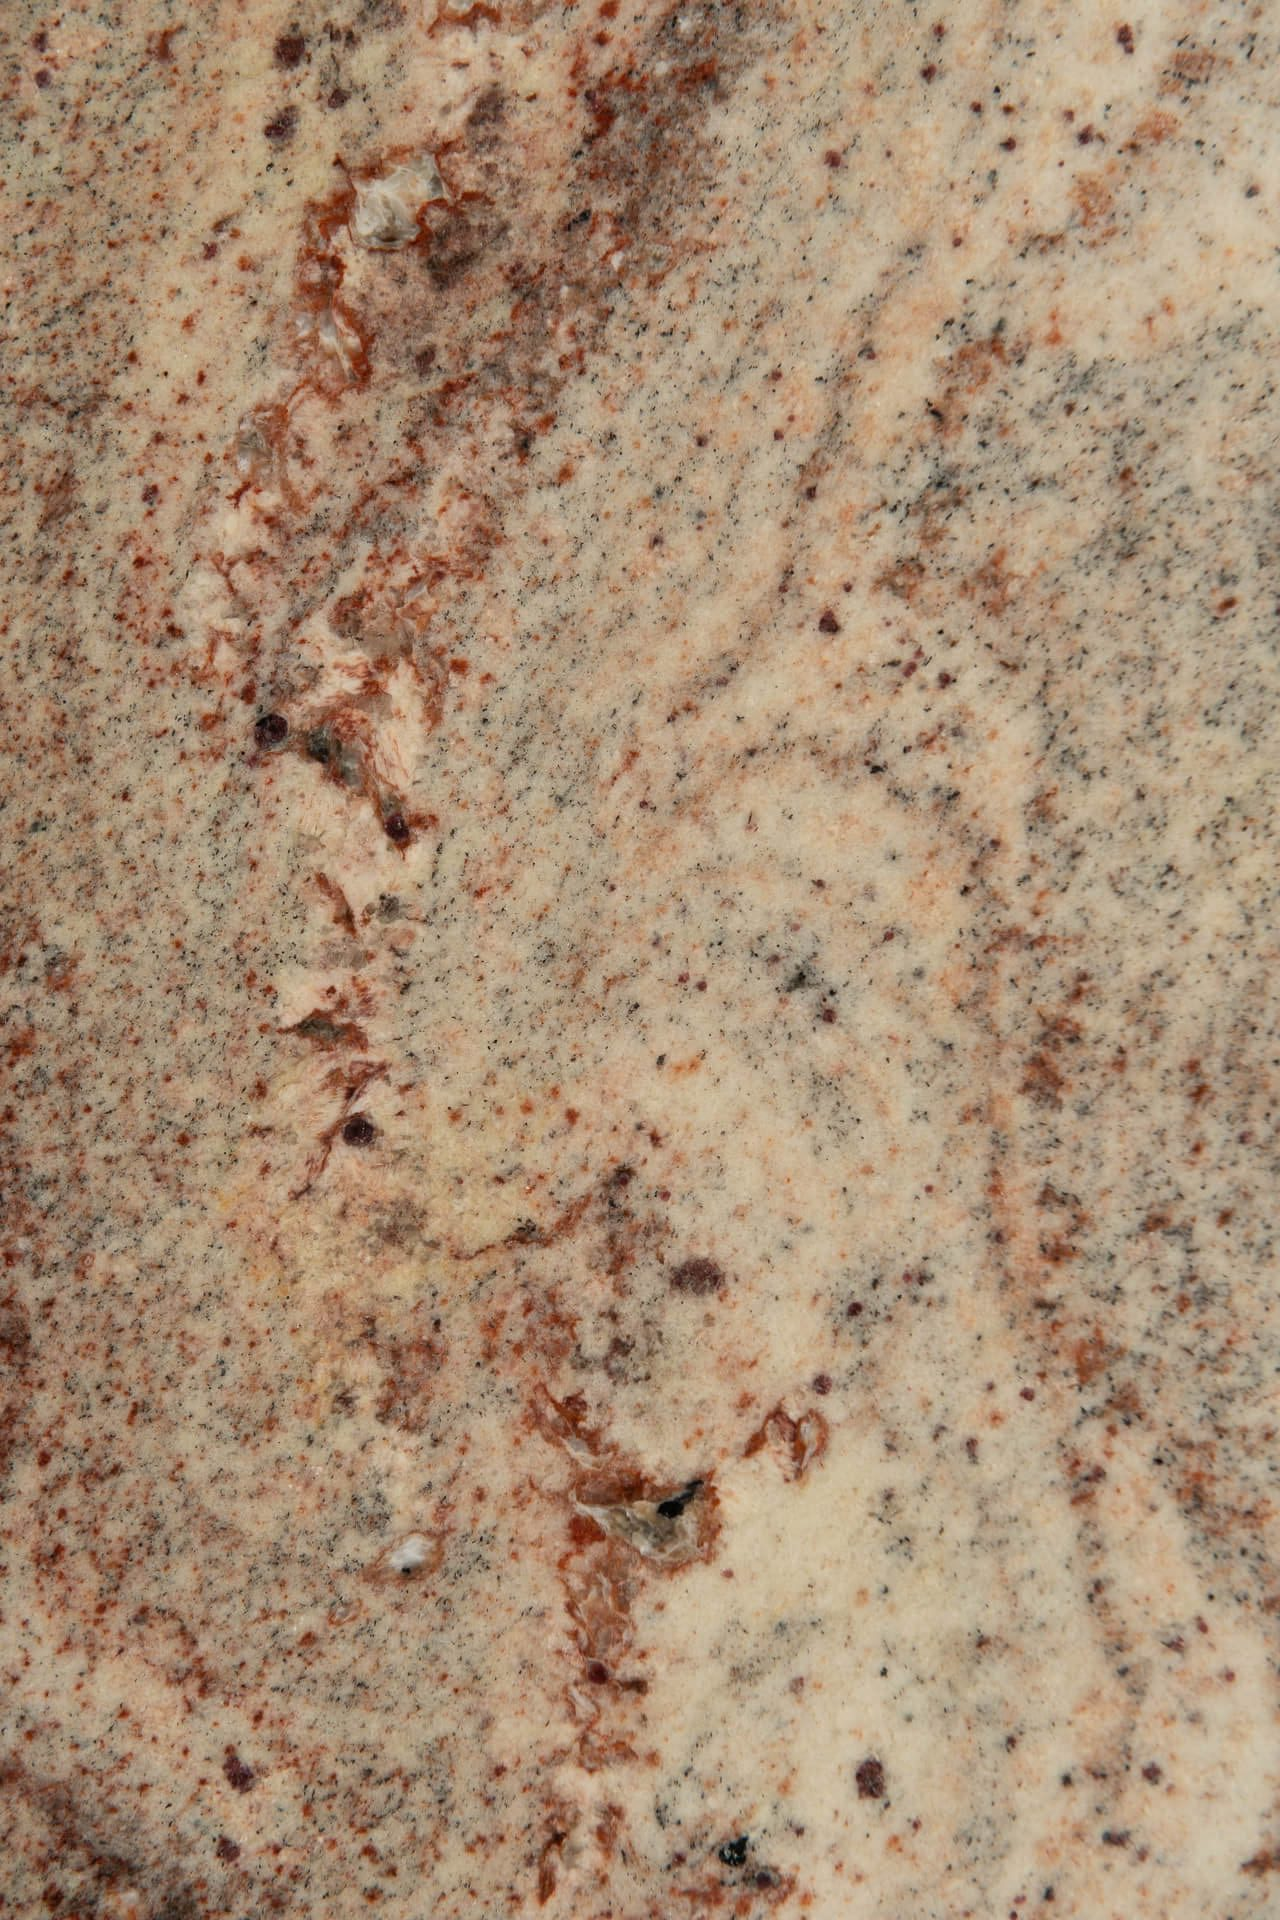 typhoon bordeaux 2 cu countertop - by Magnolia Countertops. A Countertop fabricator of Granite Countertops, Marble Countertops, and Quartz Countertops in Cookeville and Crossville TN.